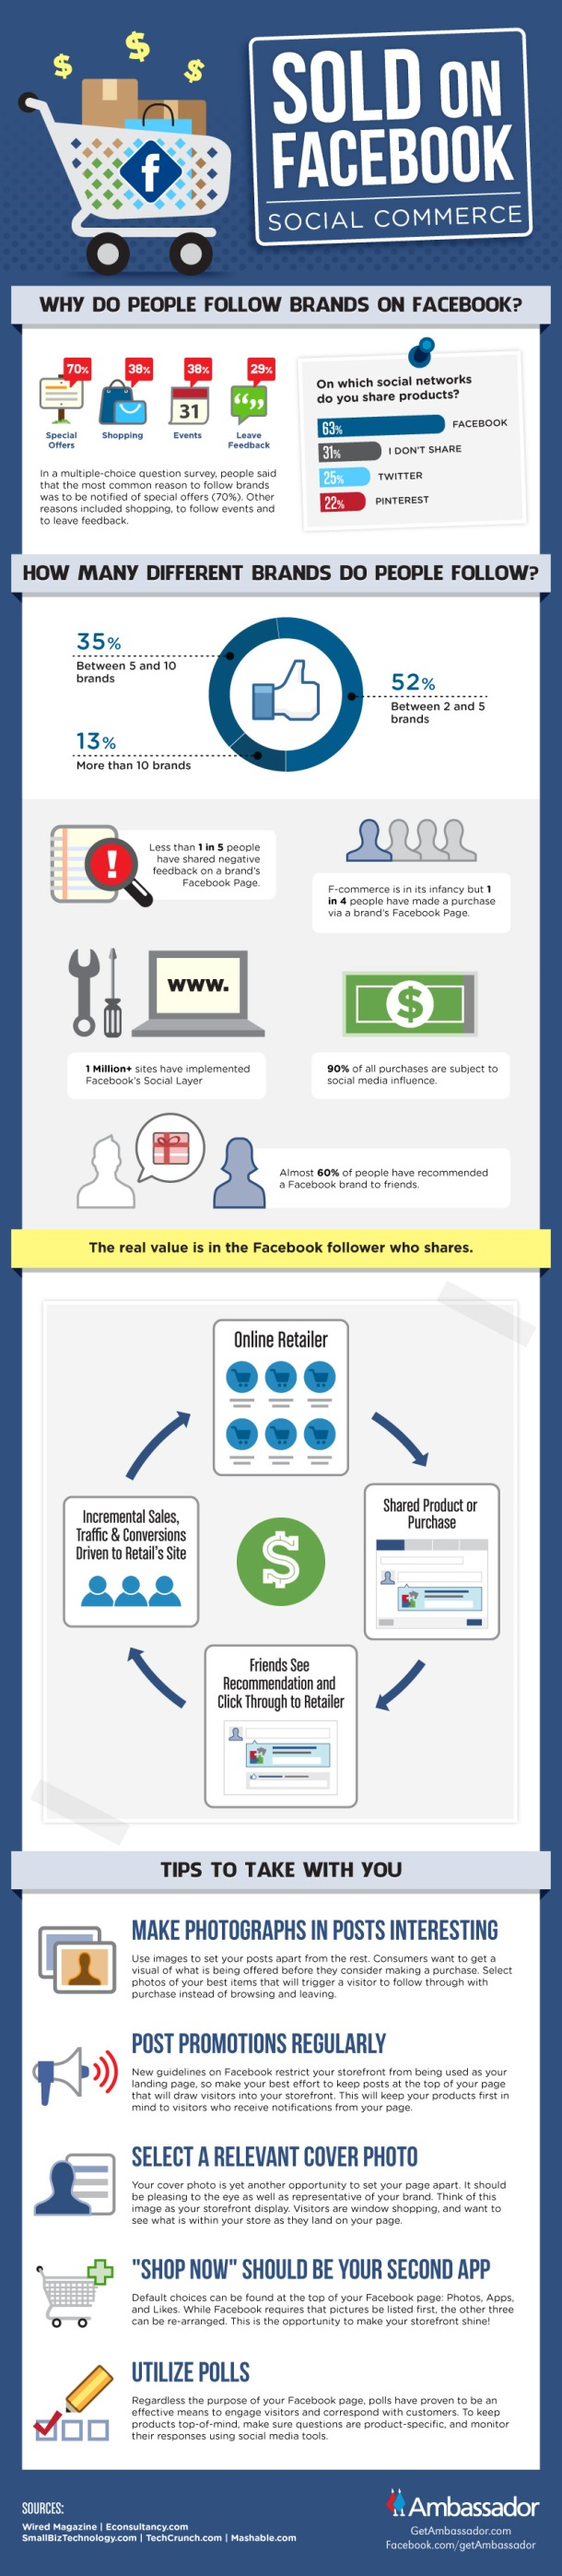 Sold On Facebook Social Commerce